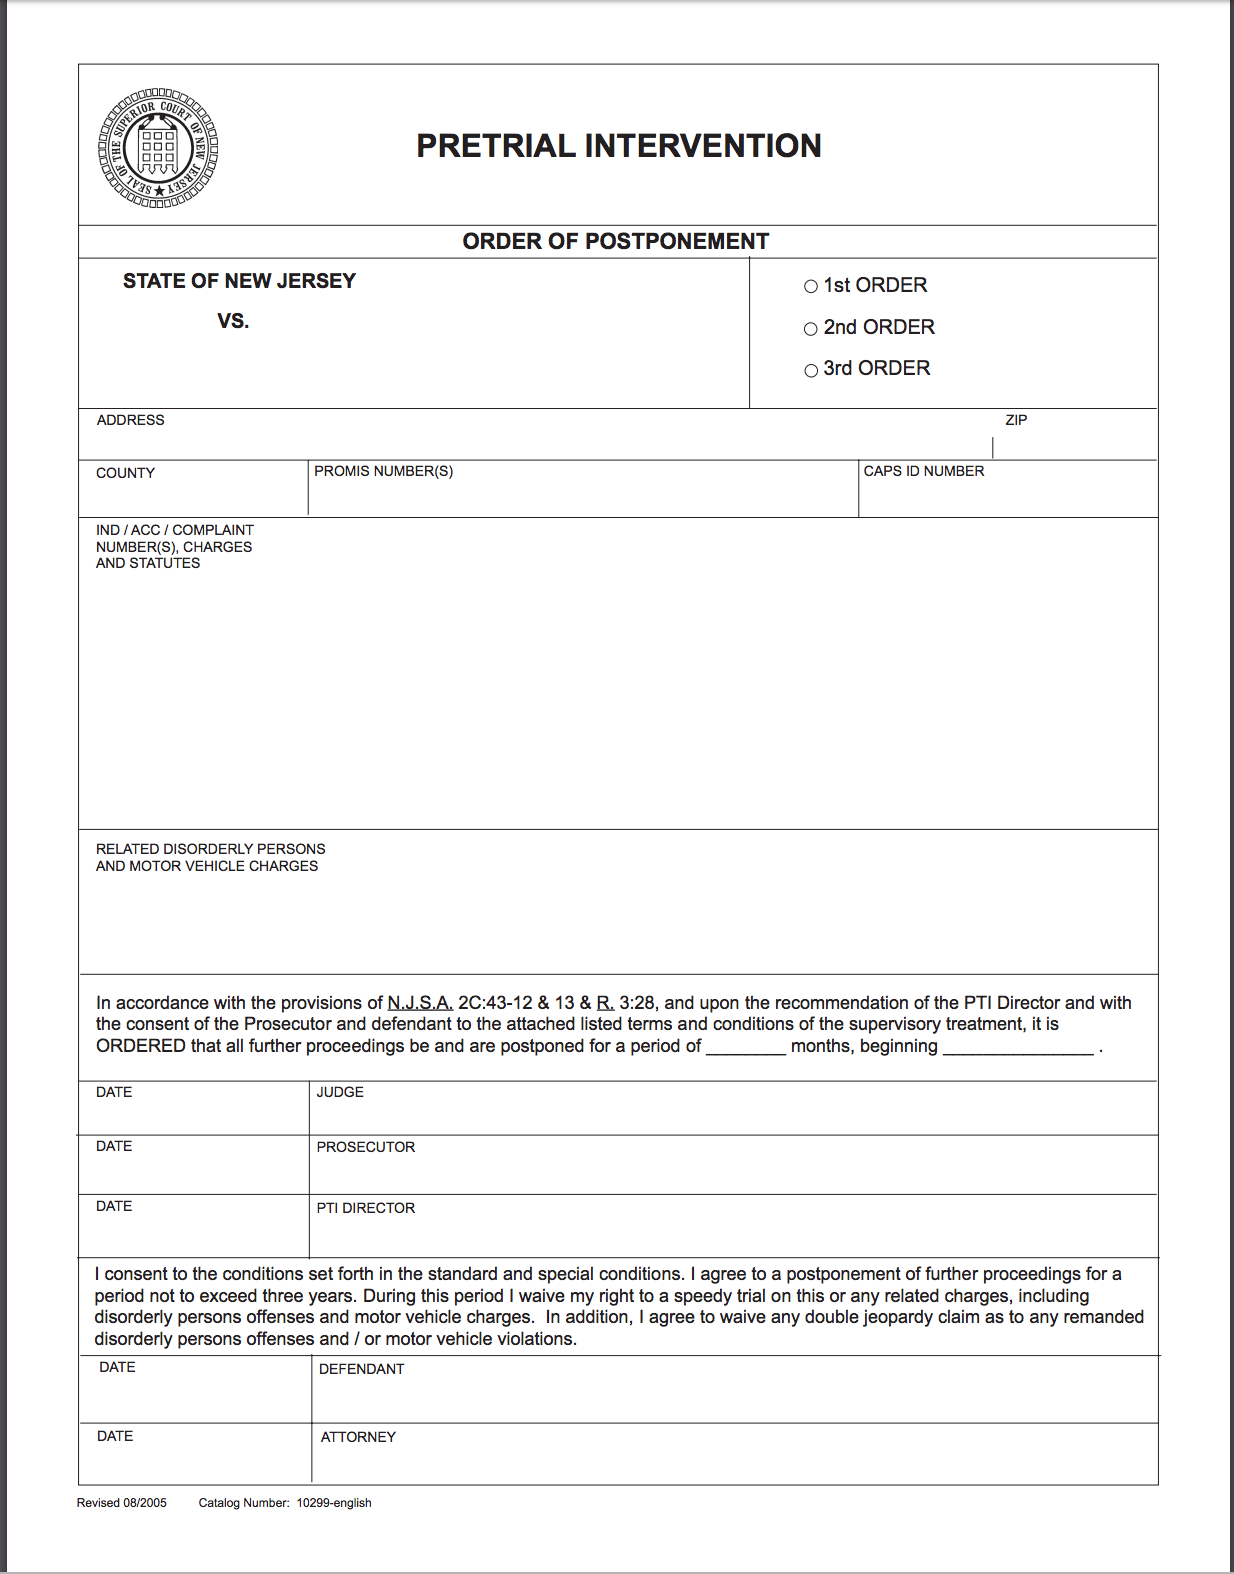 This is what the order of postponement looks like if you are admitted into Pretrial Intervention in New Jersey.